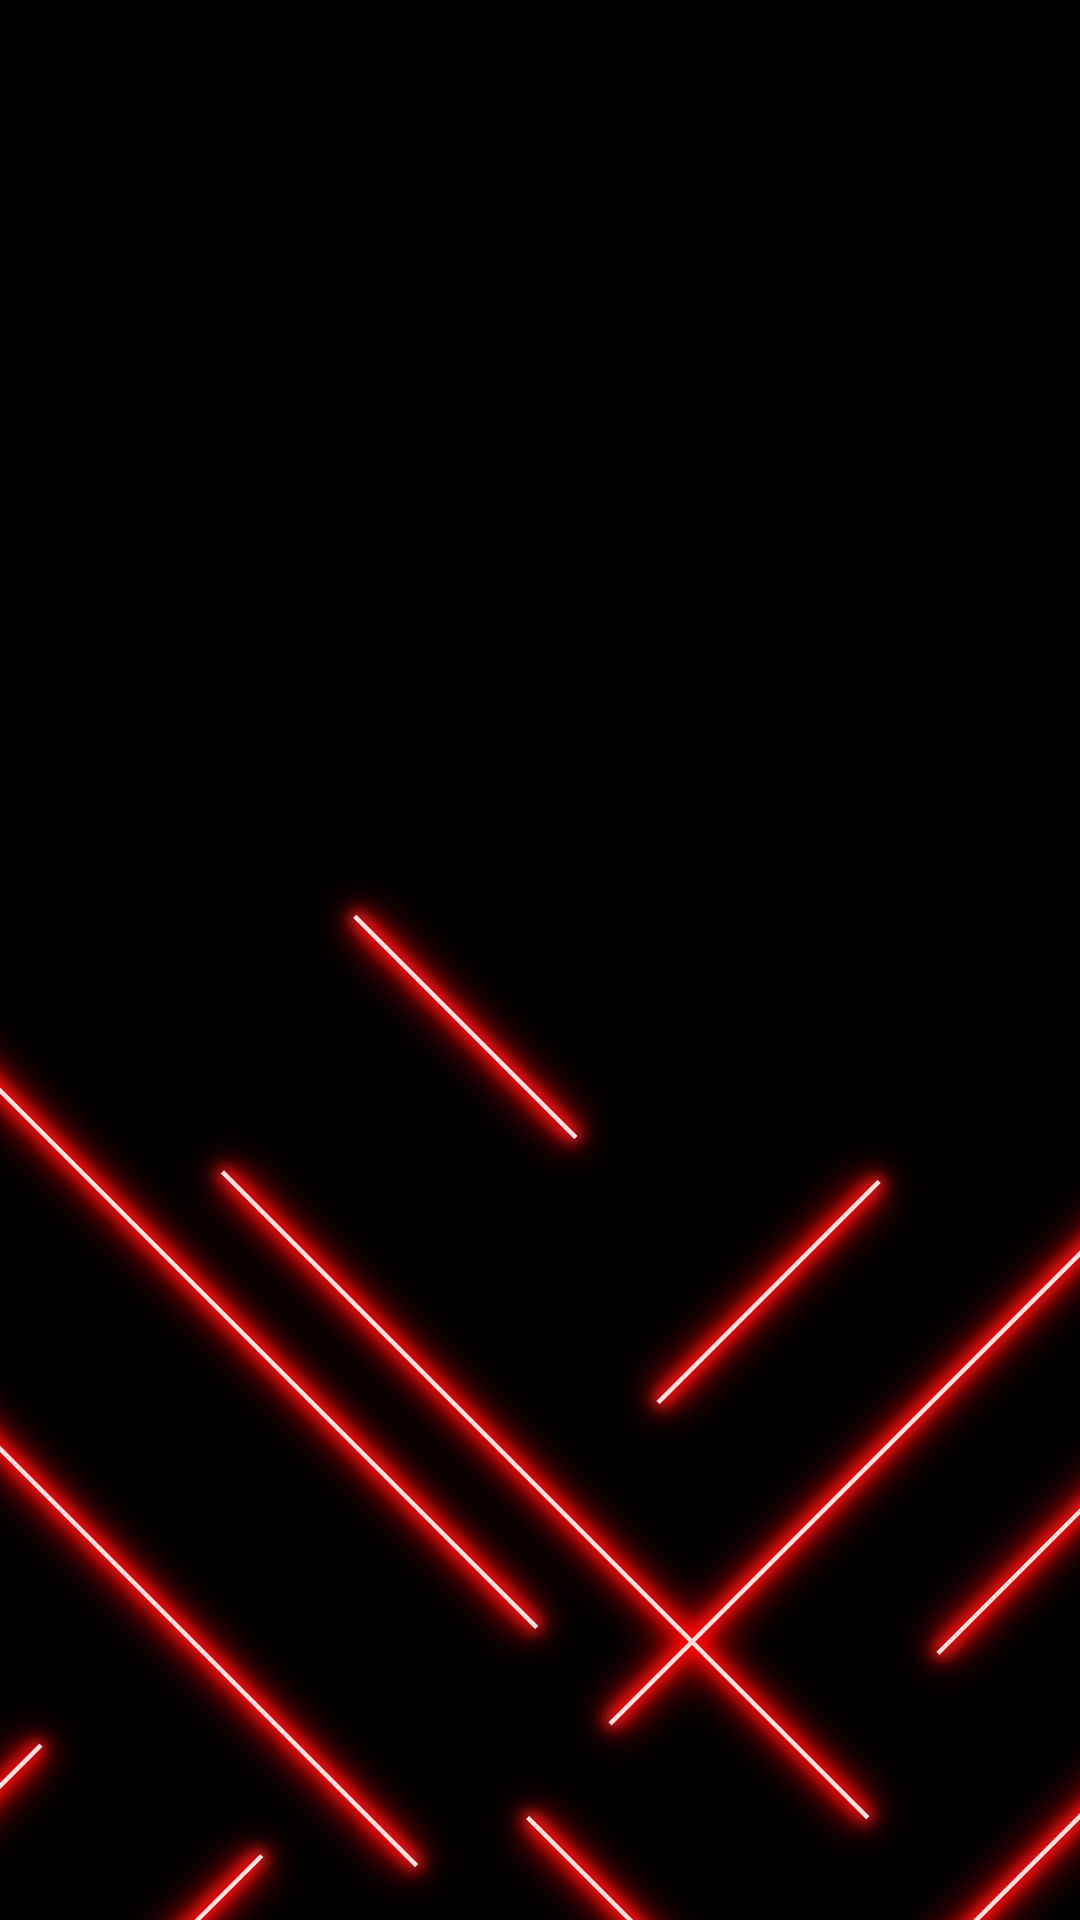 Amoled wallpaper with red neon lines